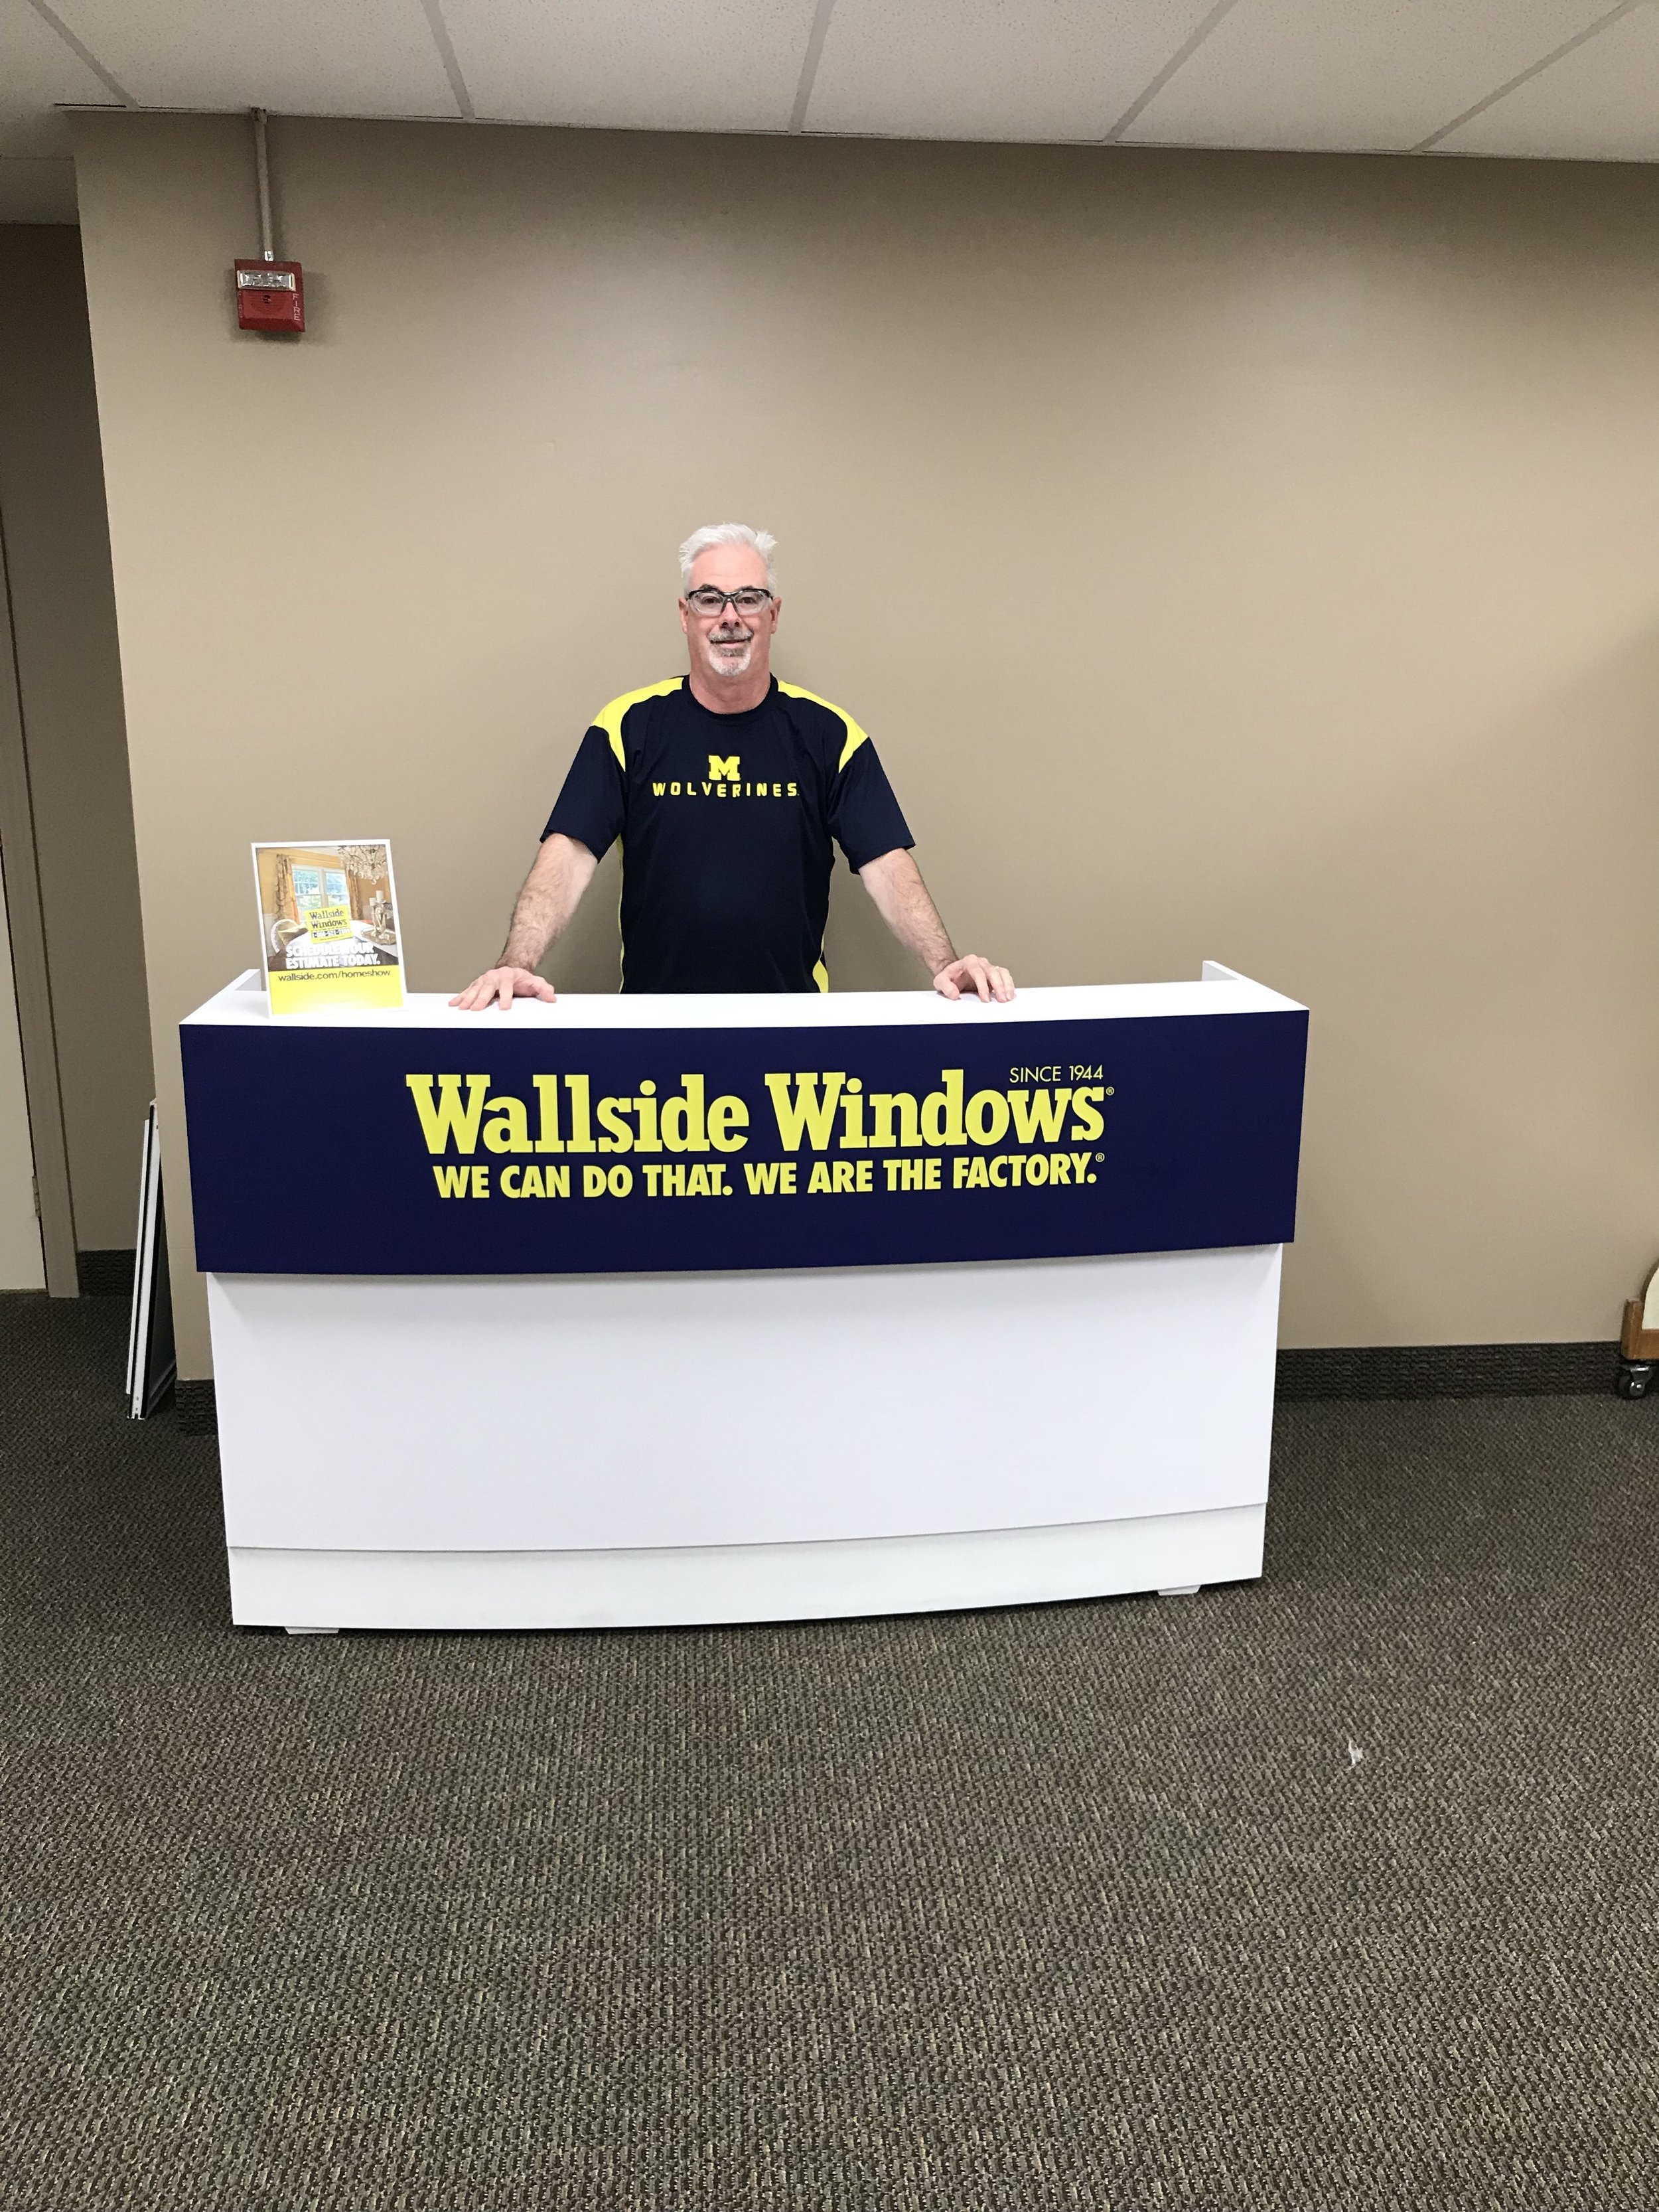 Meet John Dimitroff. He has worked for more than 20 years at Wallside.